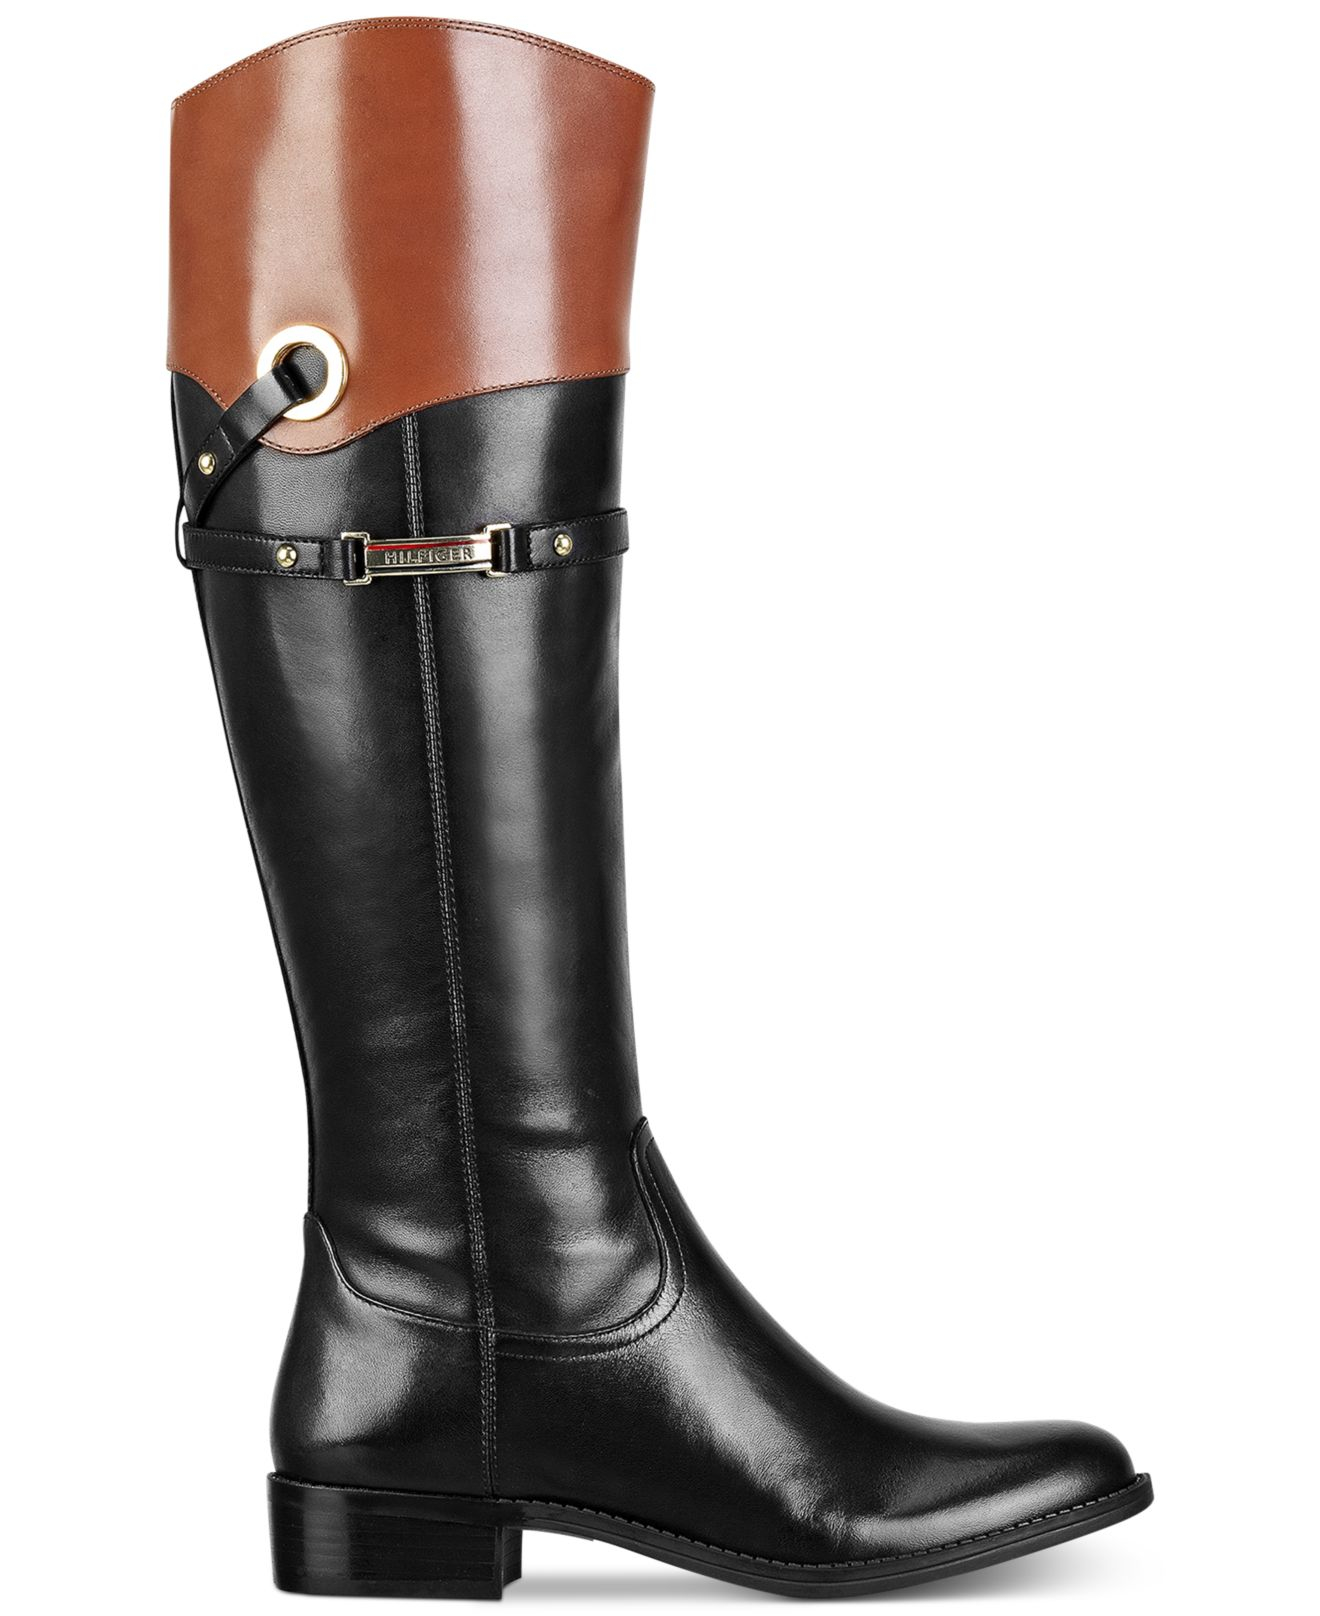 tommy hilfiger delphy wide calf riding boots in black black tan lyst. Black Bedroom Furniture Sets. Home Design Ideas